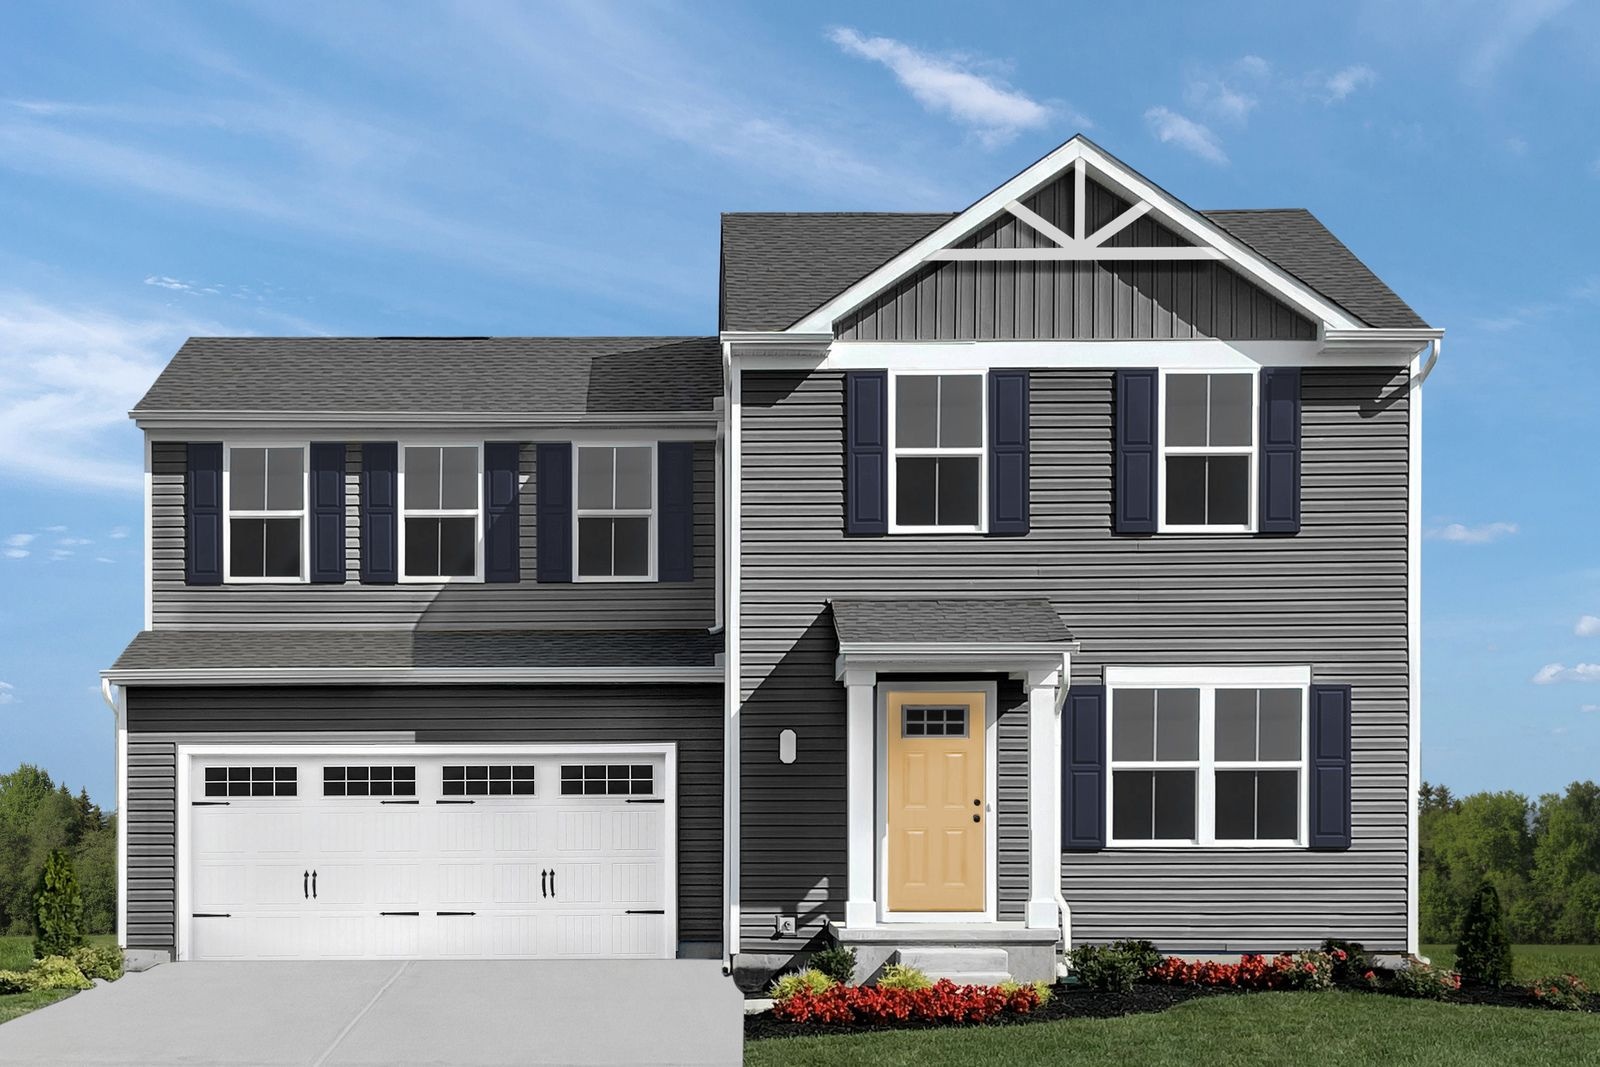 Own a new single-family home in the area's most affordable community:Whereeveryday conveniences & Downtown Easley are within 3 miles. Join the VIP list now to stay in the know! From the low $200s.